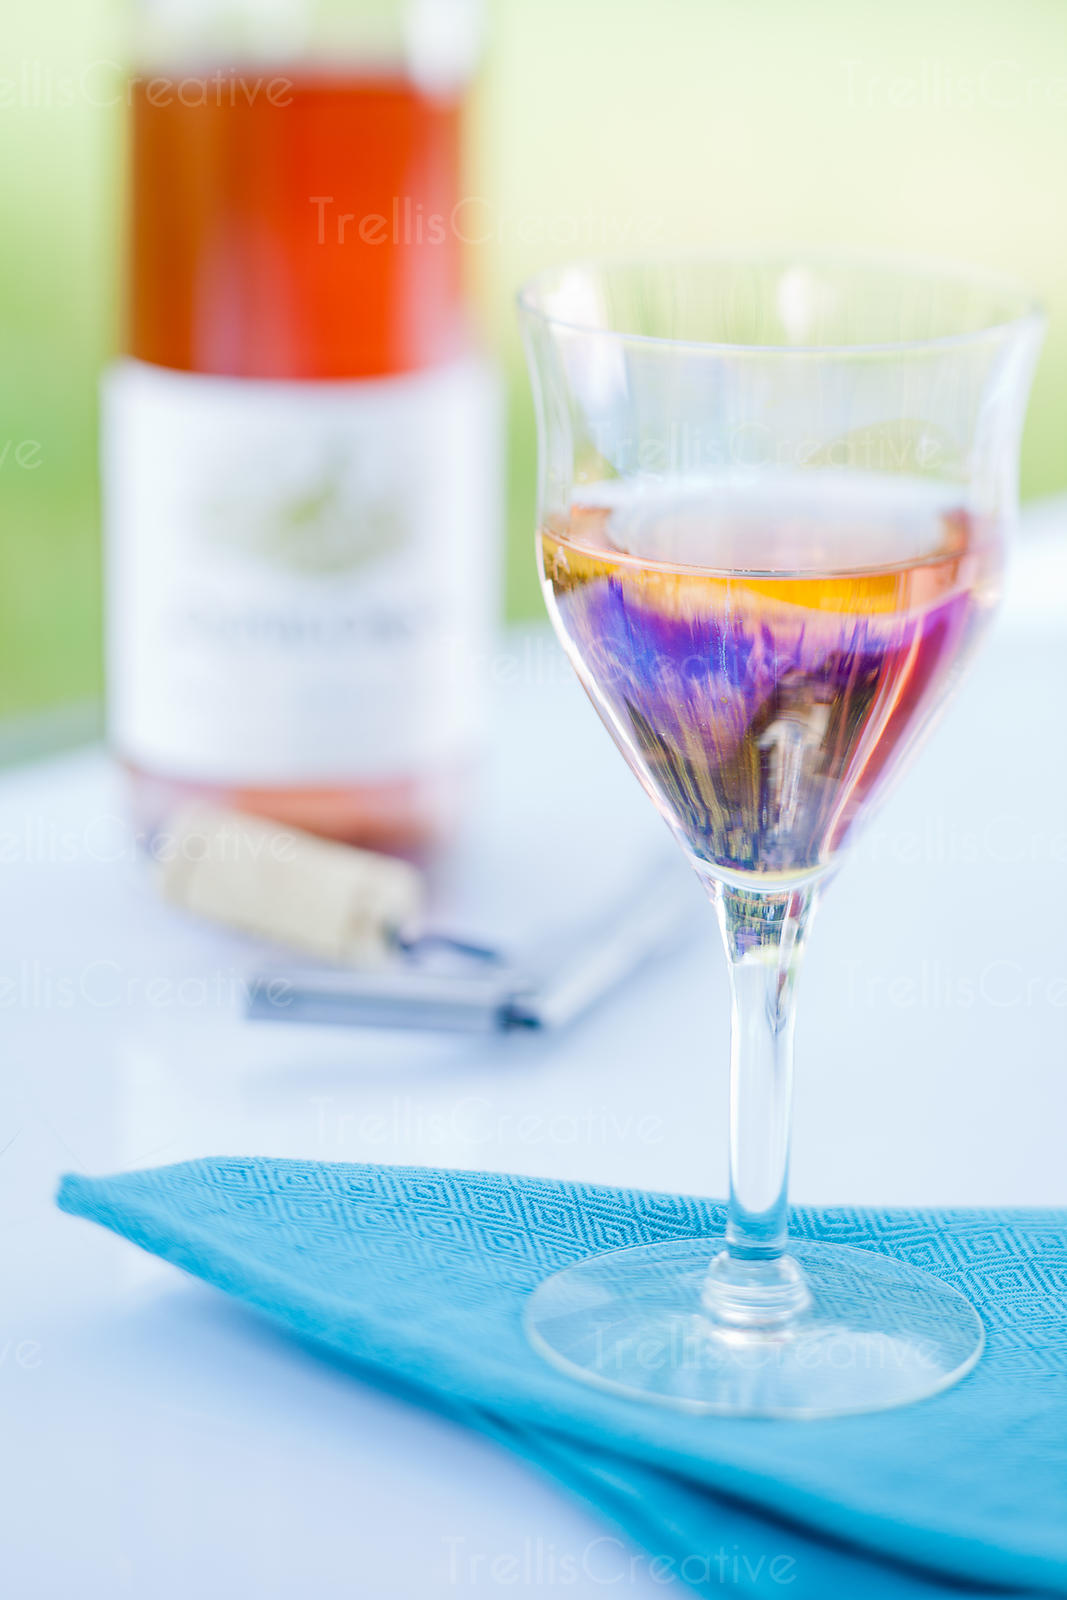 An interesting shaped wine glass with an opened bottle of rose wine on an outdoor patio table